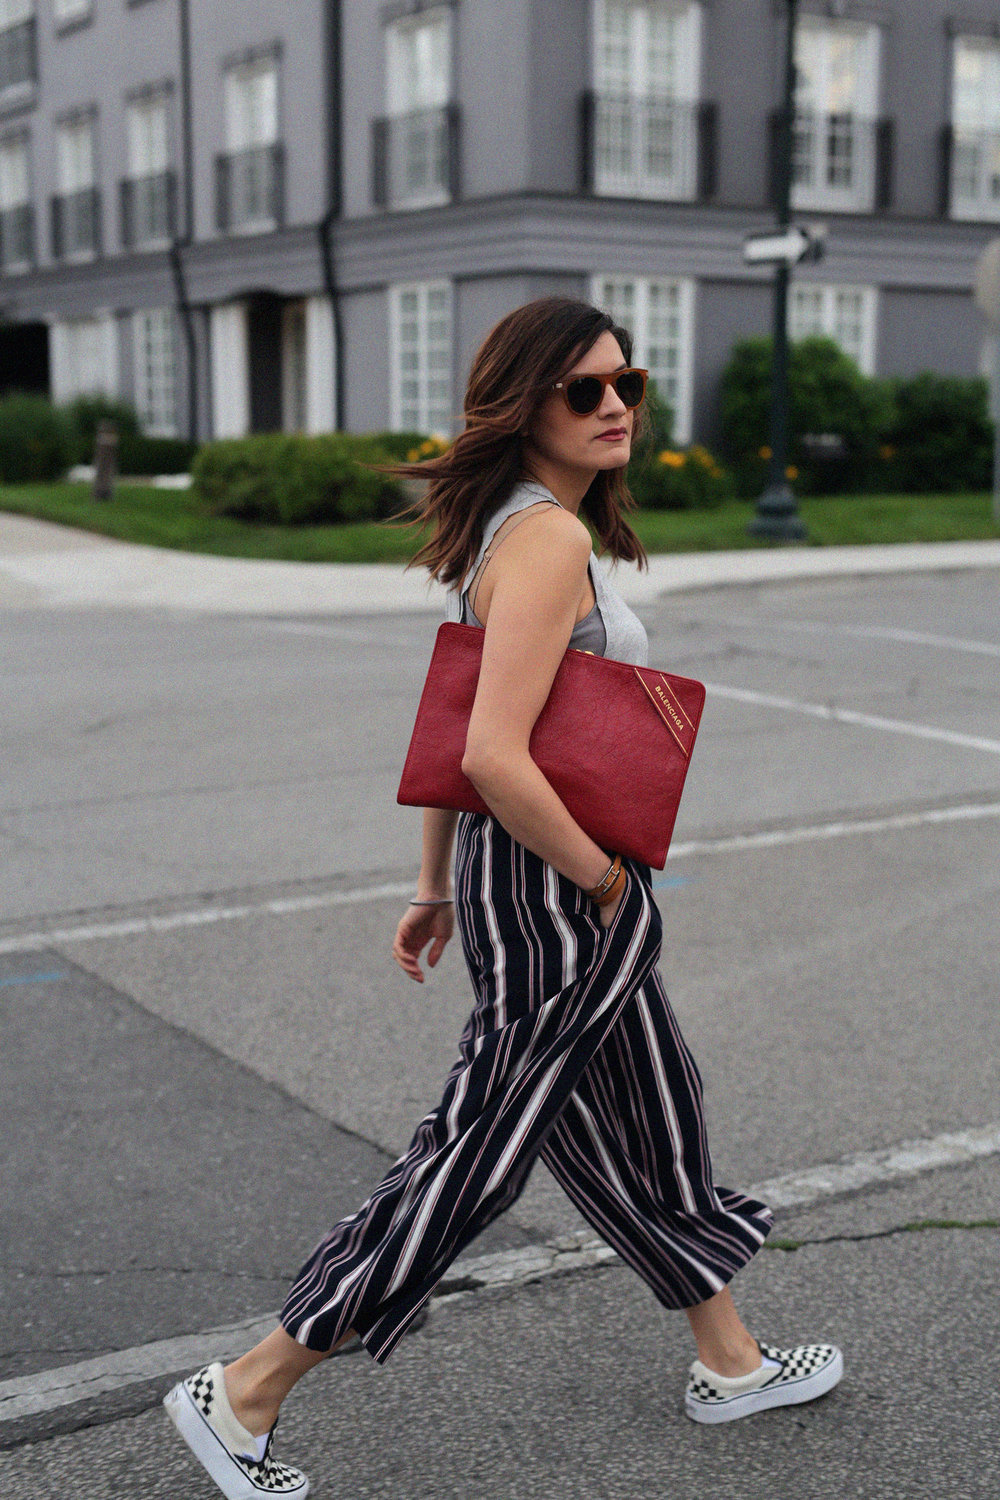 red balenciaga clutch, document holder, checkered vans and striped pants - street style_2090.jpg